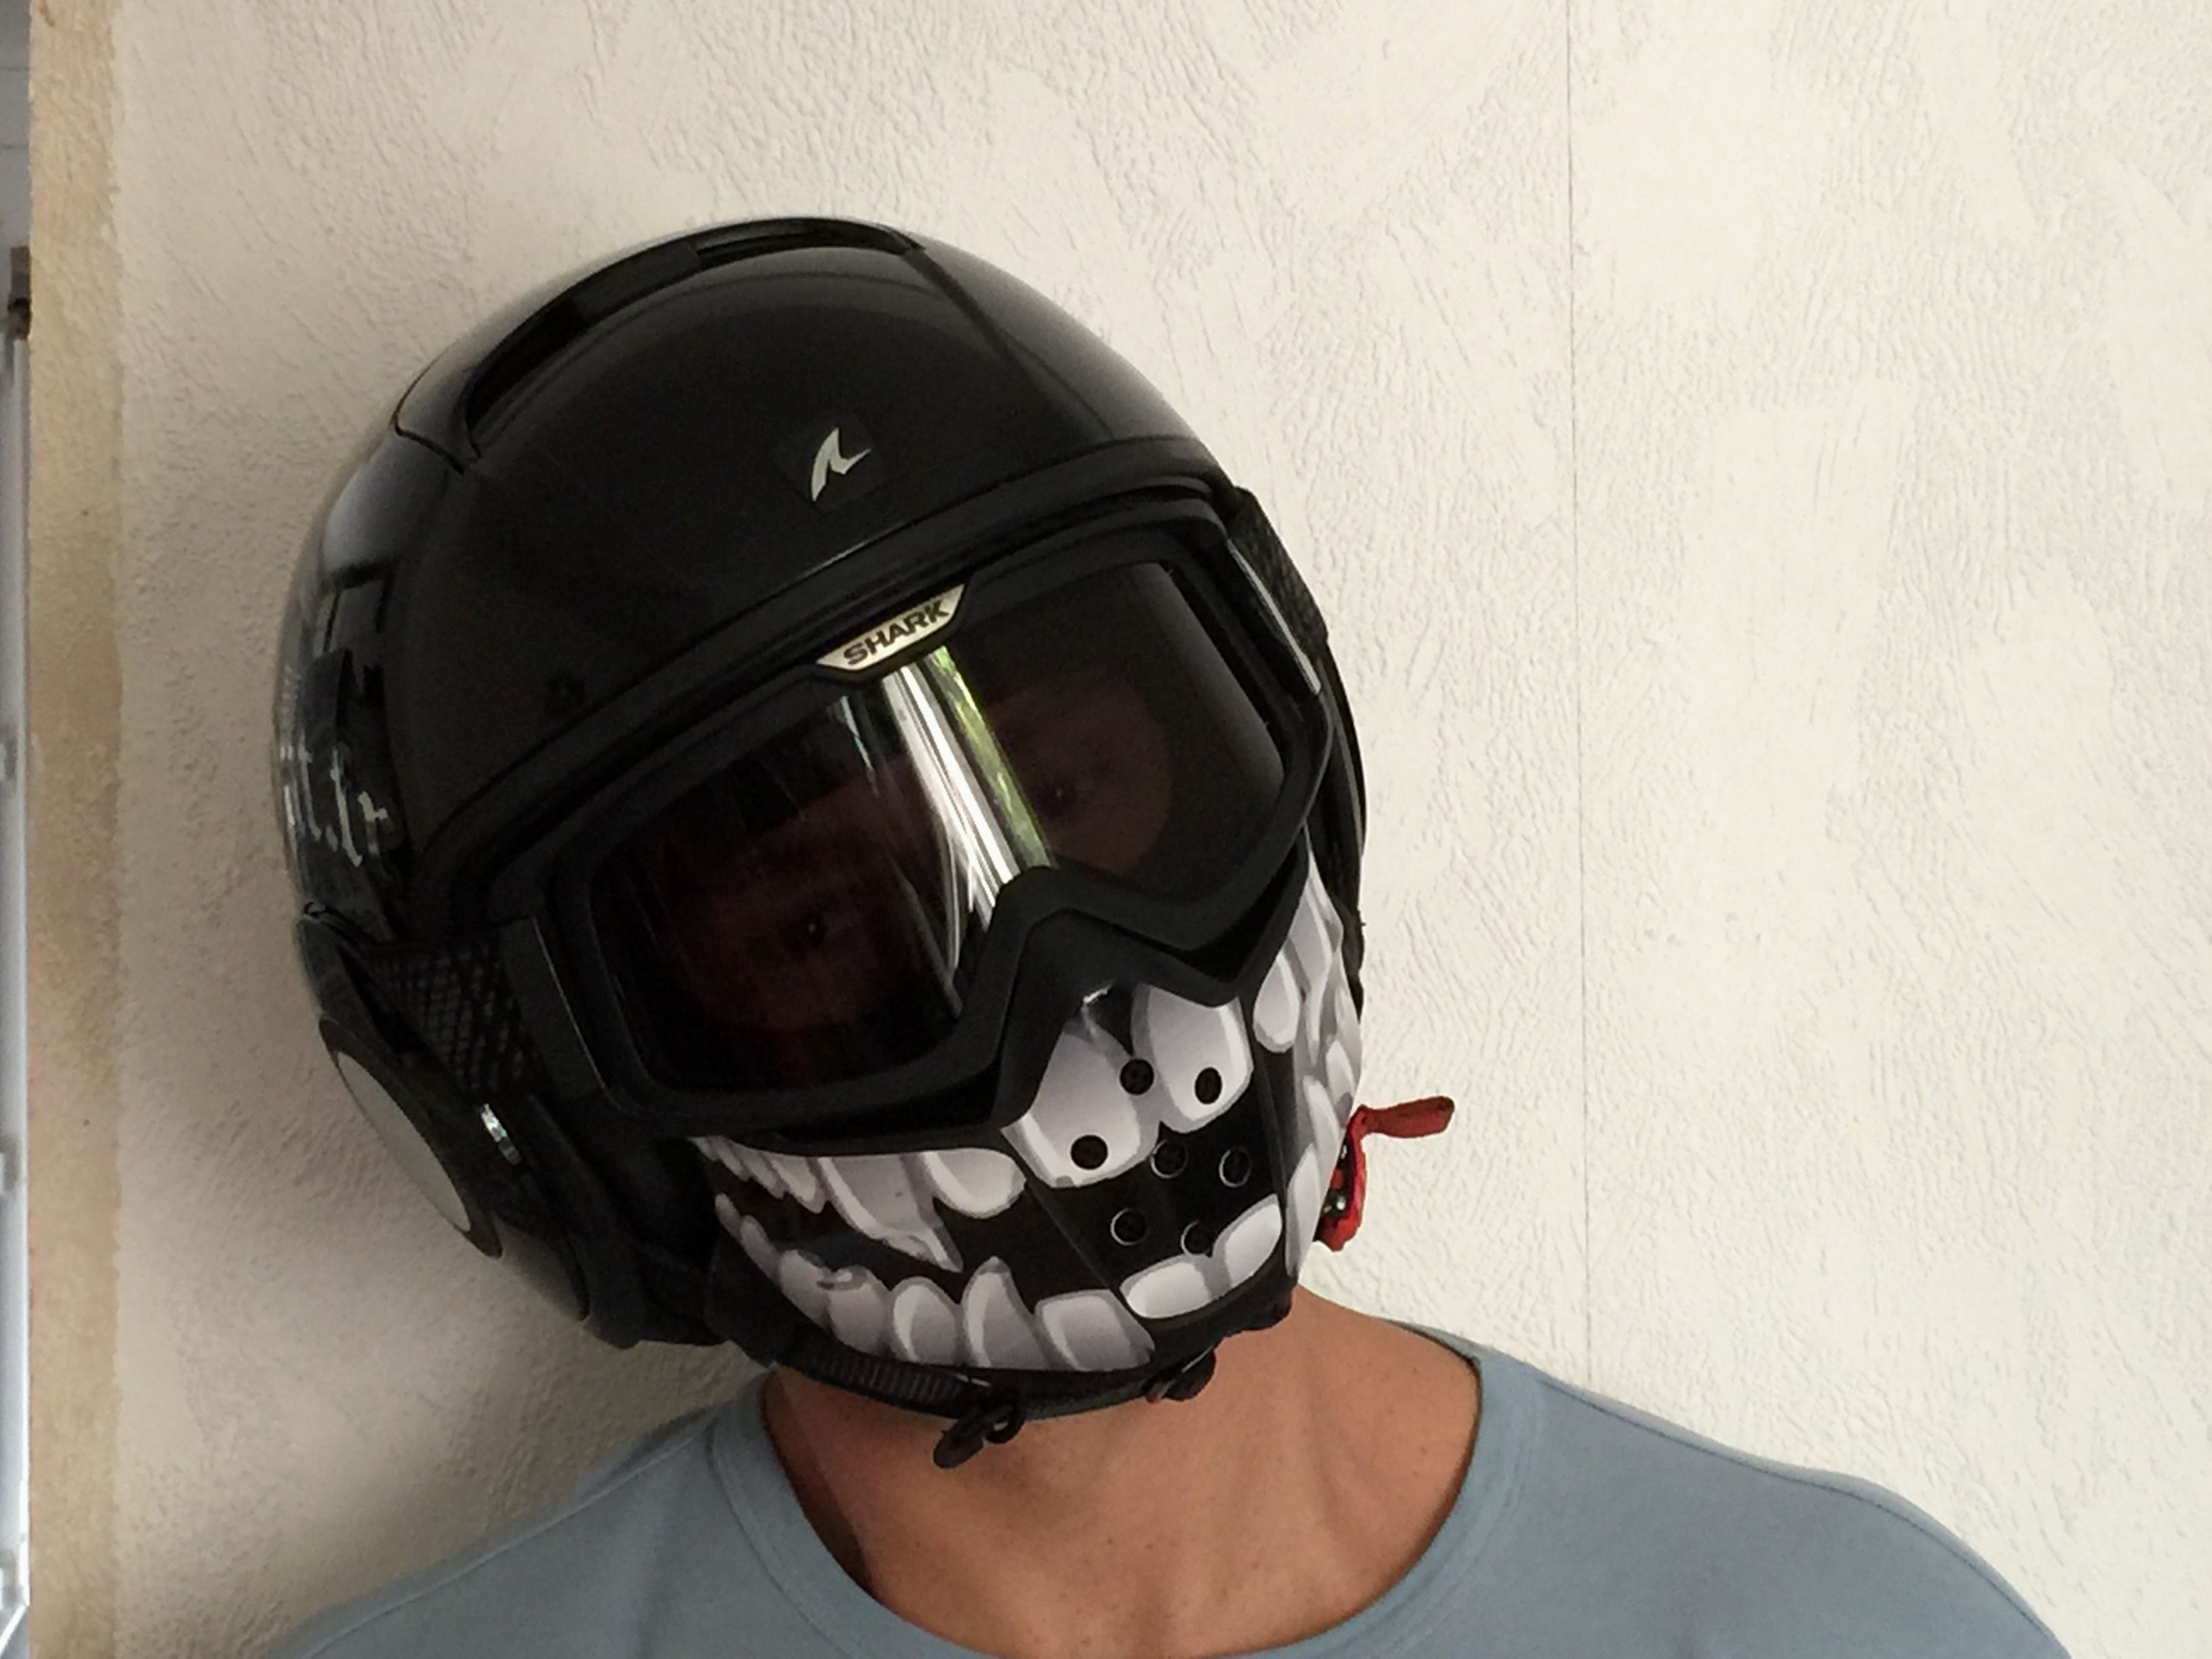 Video Peinture Aerographe Nouveau Stickers Helmet Shark Raw Moto Stuff Galerie